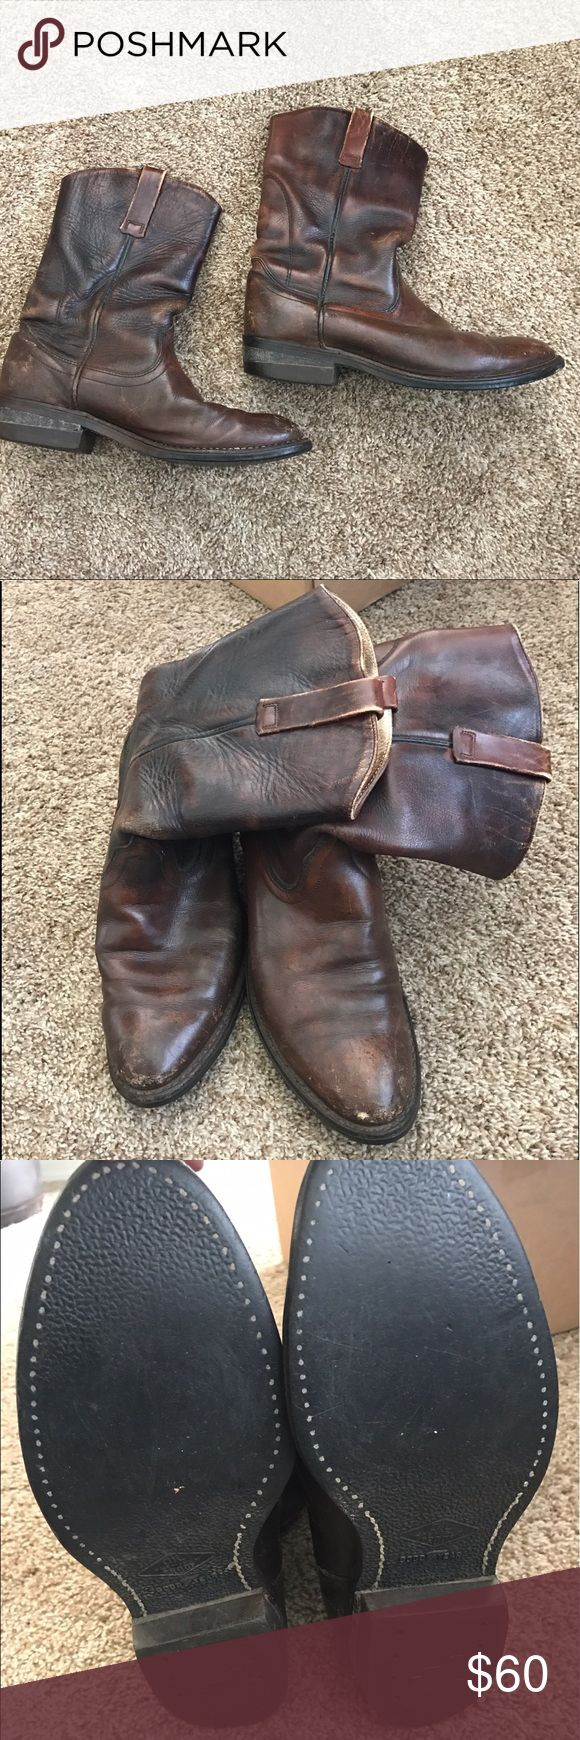 Red Wing boots⚡️QUICK SALE⚡️ Men's Red Wing western cowboy boots. Size 8.5. I believe they are Peco's. Good used condition. Red Wing Shoes Shoes Boots